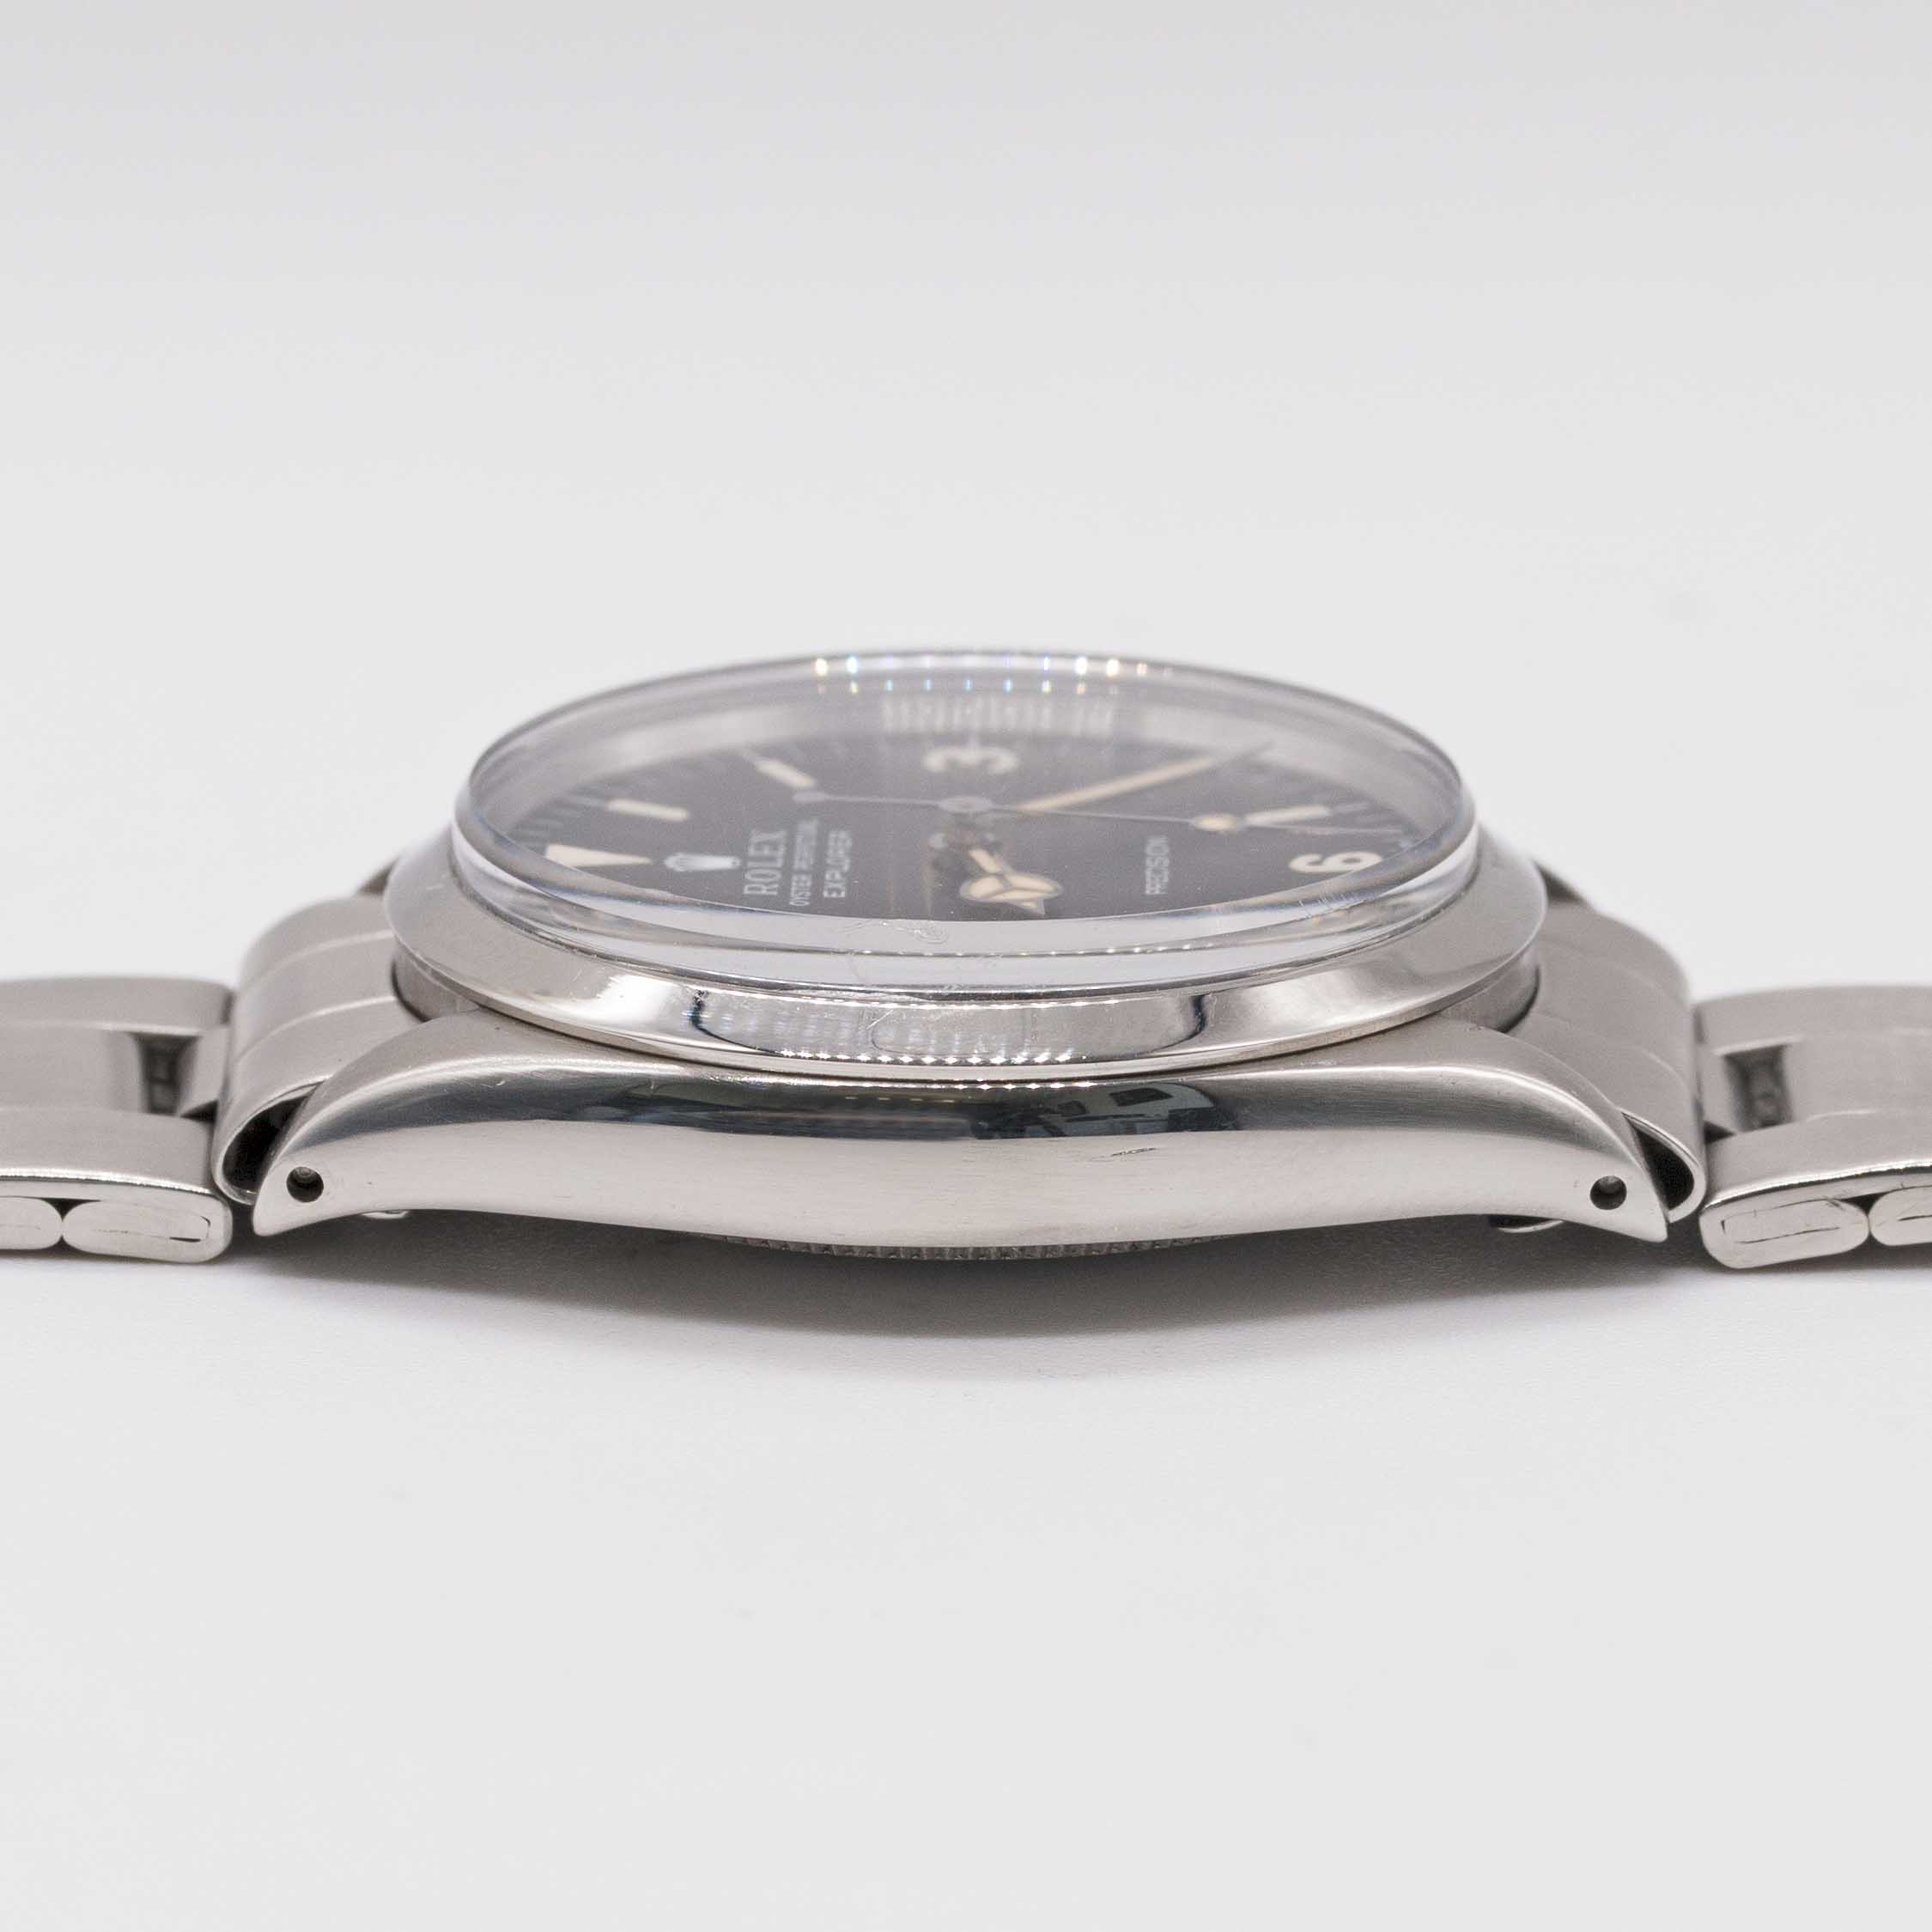 Lot 23 - A GENTLEMAN'S STAINLESS STEEL ROLEX OYSTER PERPETUAL EXPLORER PRECISION BRACELET WATCH CIRCA 1967,